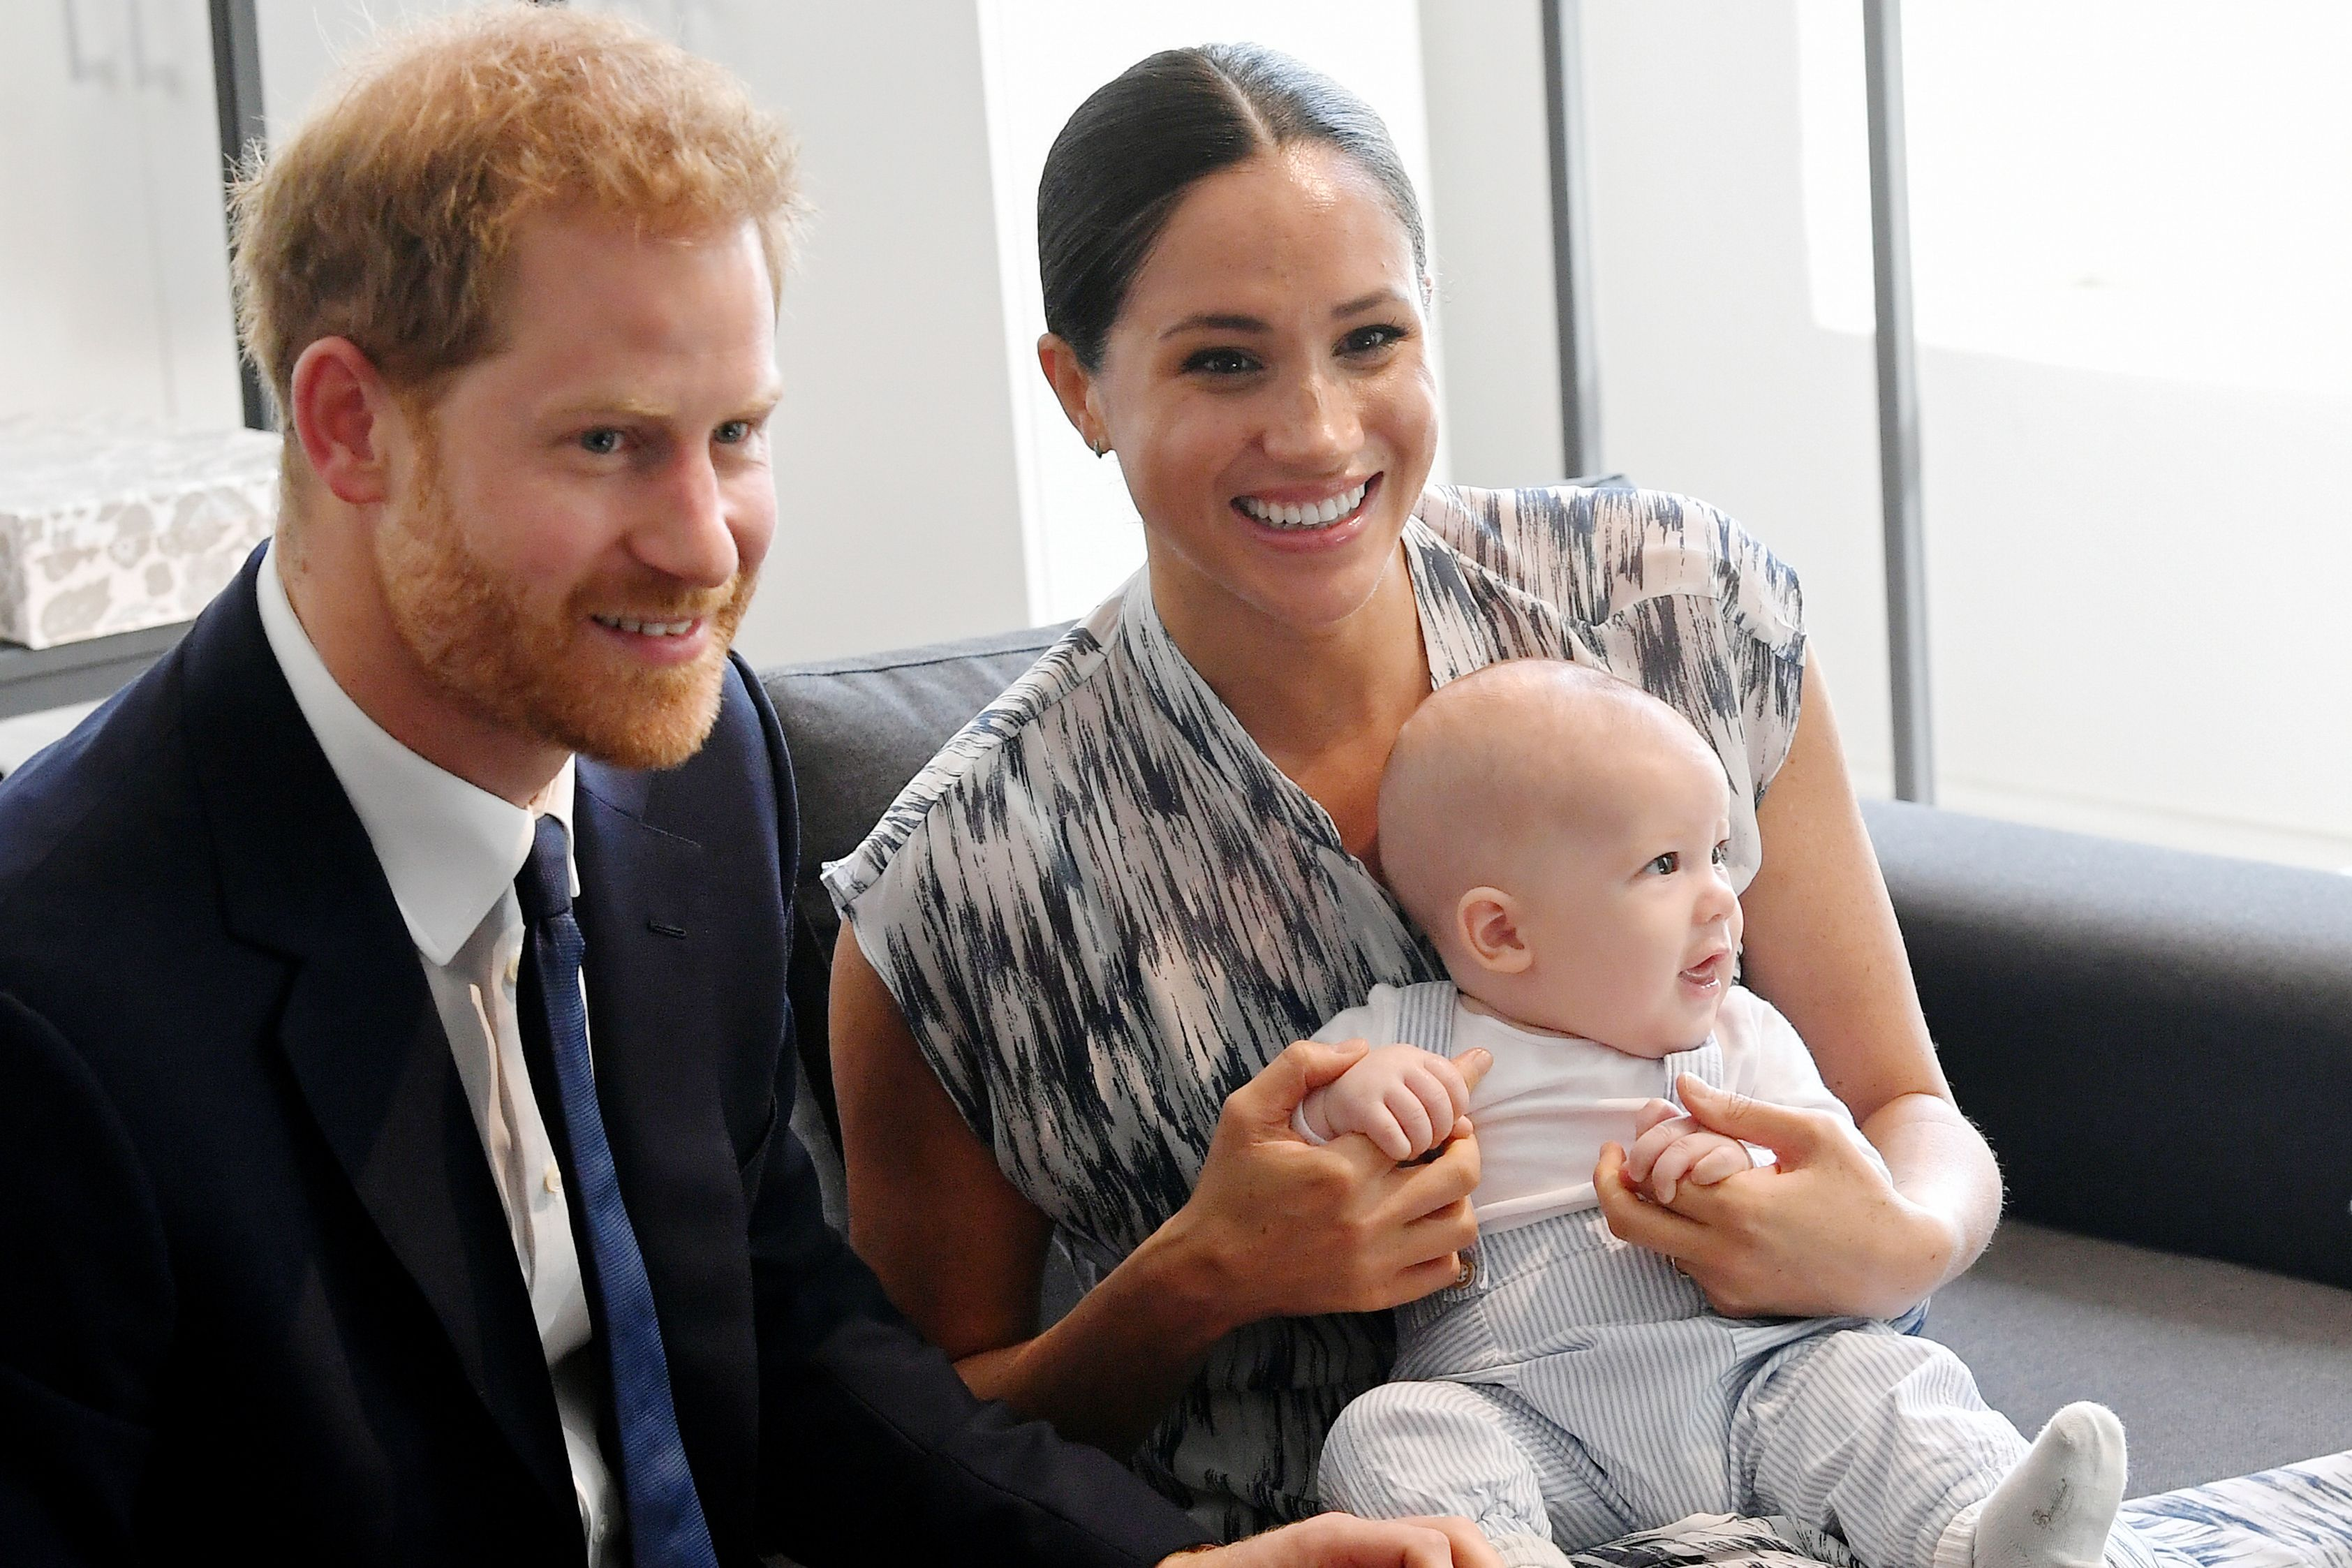 Prince Harry, Meghan Markle, and Archie Mountbatten-Windsor at the Desmond & Leah Tutu Legacy Foundation during their royal tour of South Africa on September 25, 2019 in Cape Town, South Africa. | Source: Getty Images